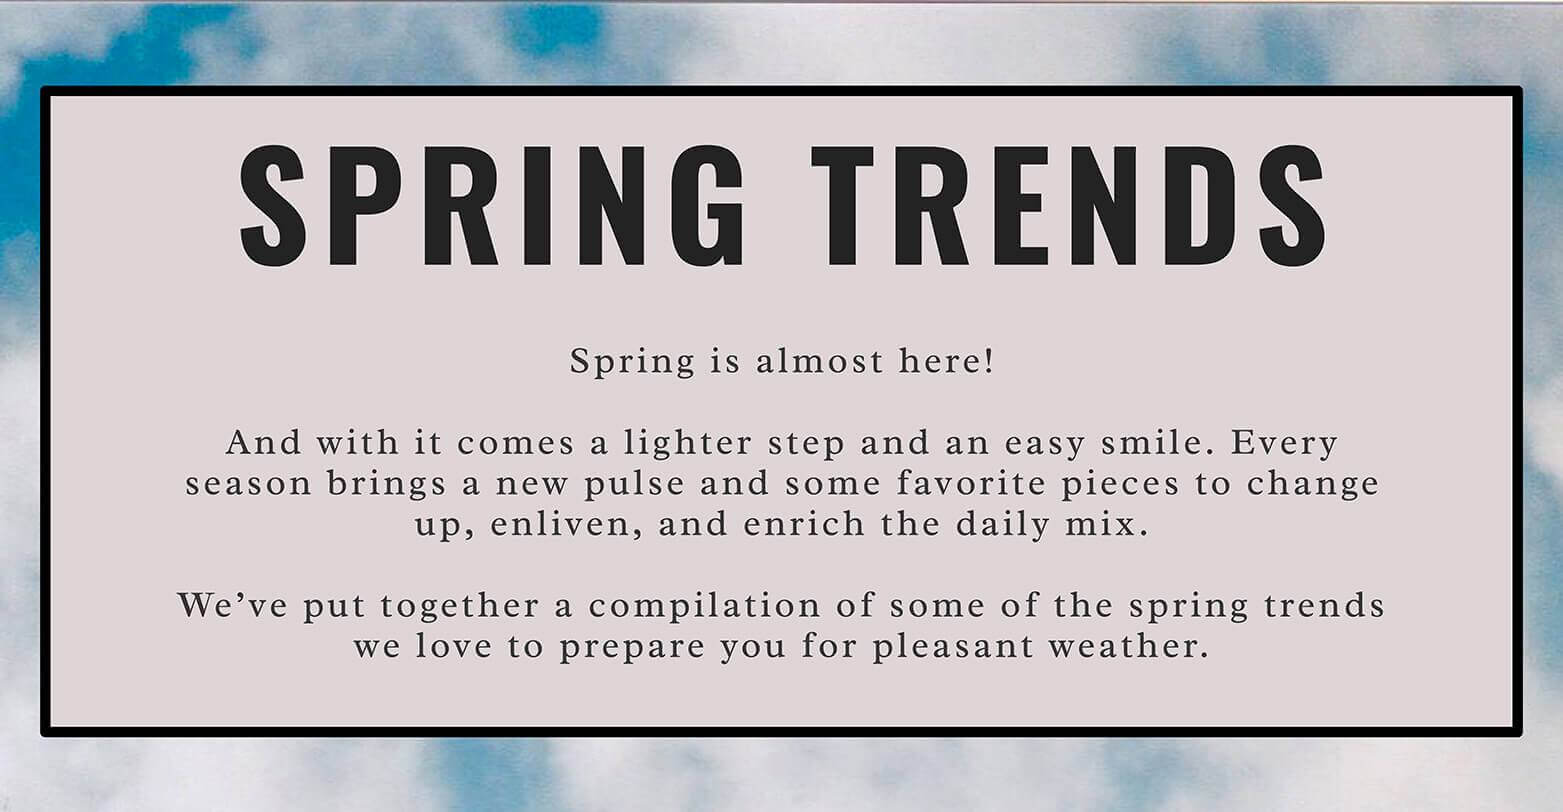 spring trends introduction